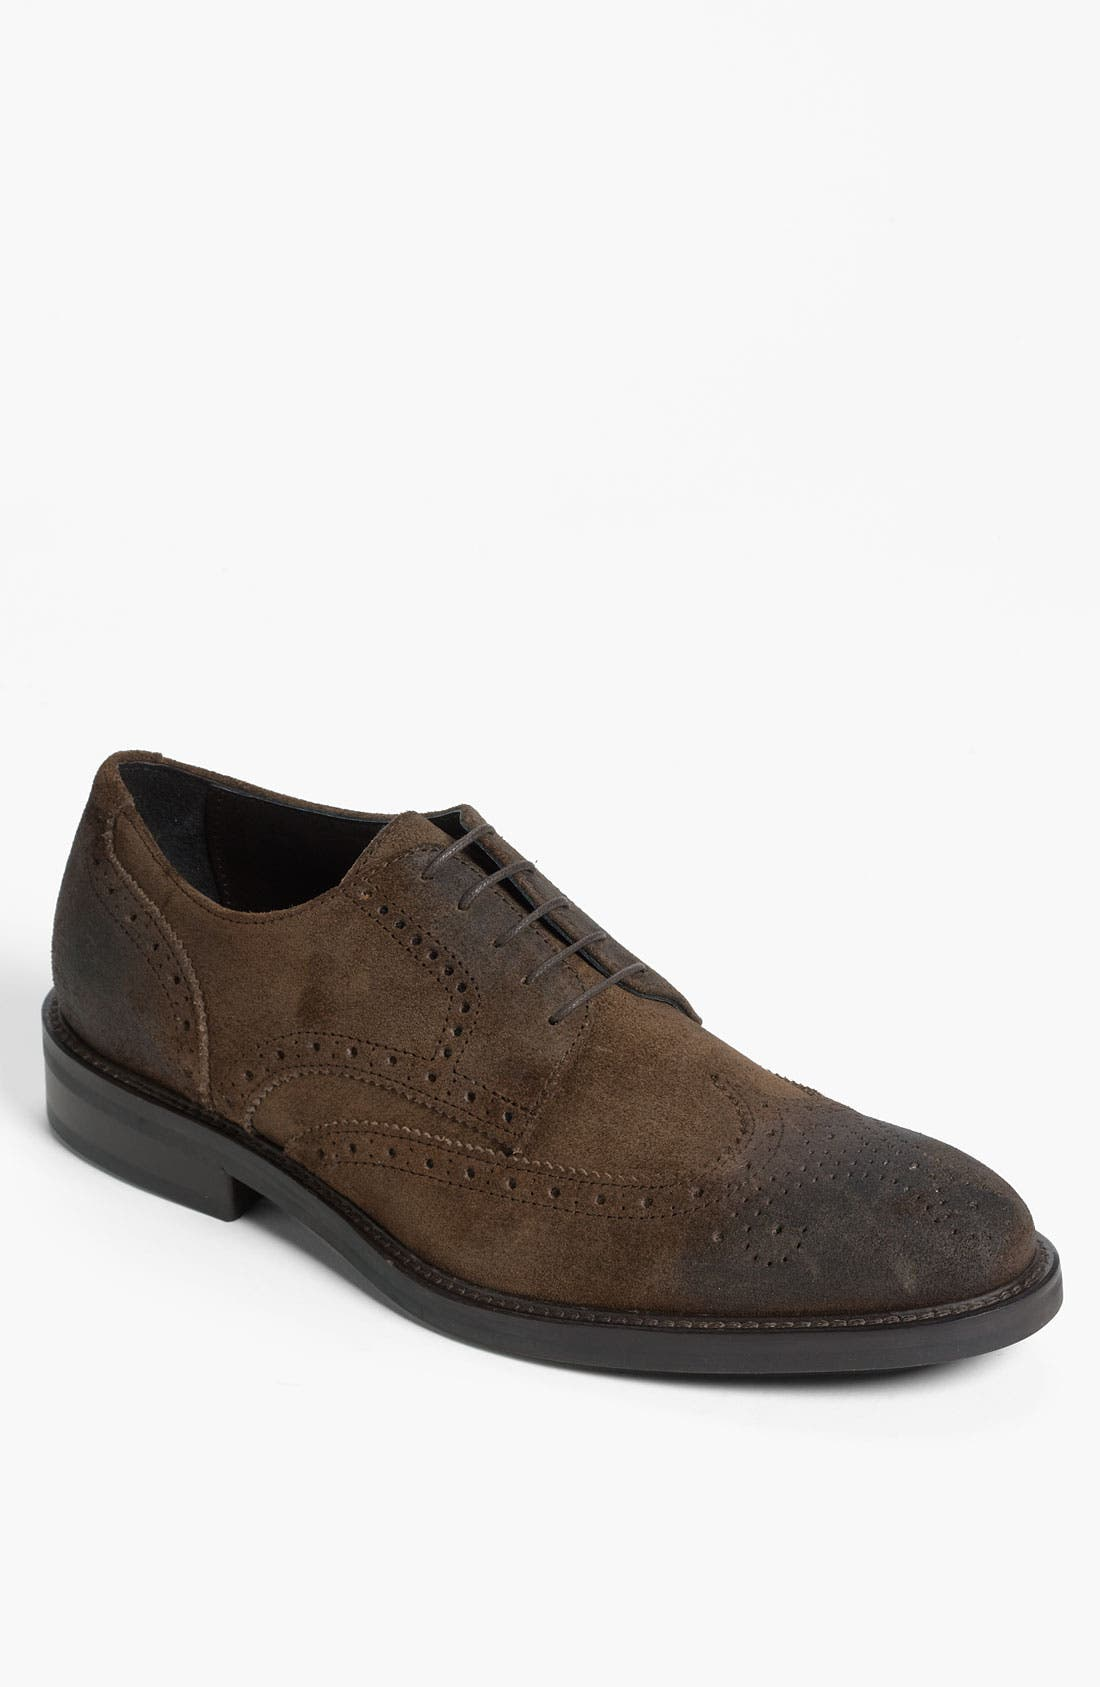 Alternate Image 1 Selected - To Boot New York 'Carr' Wingtip